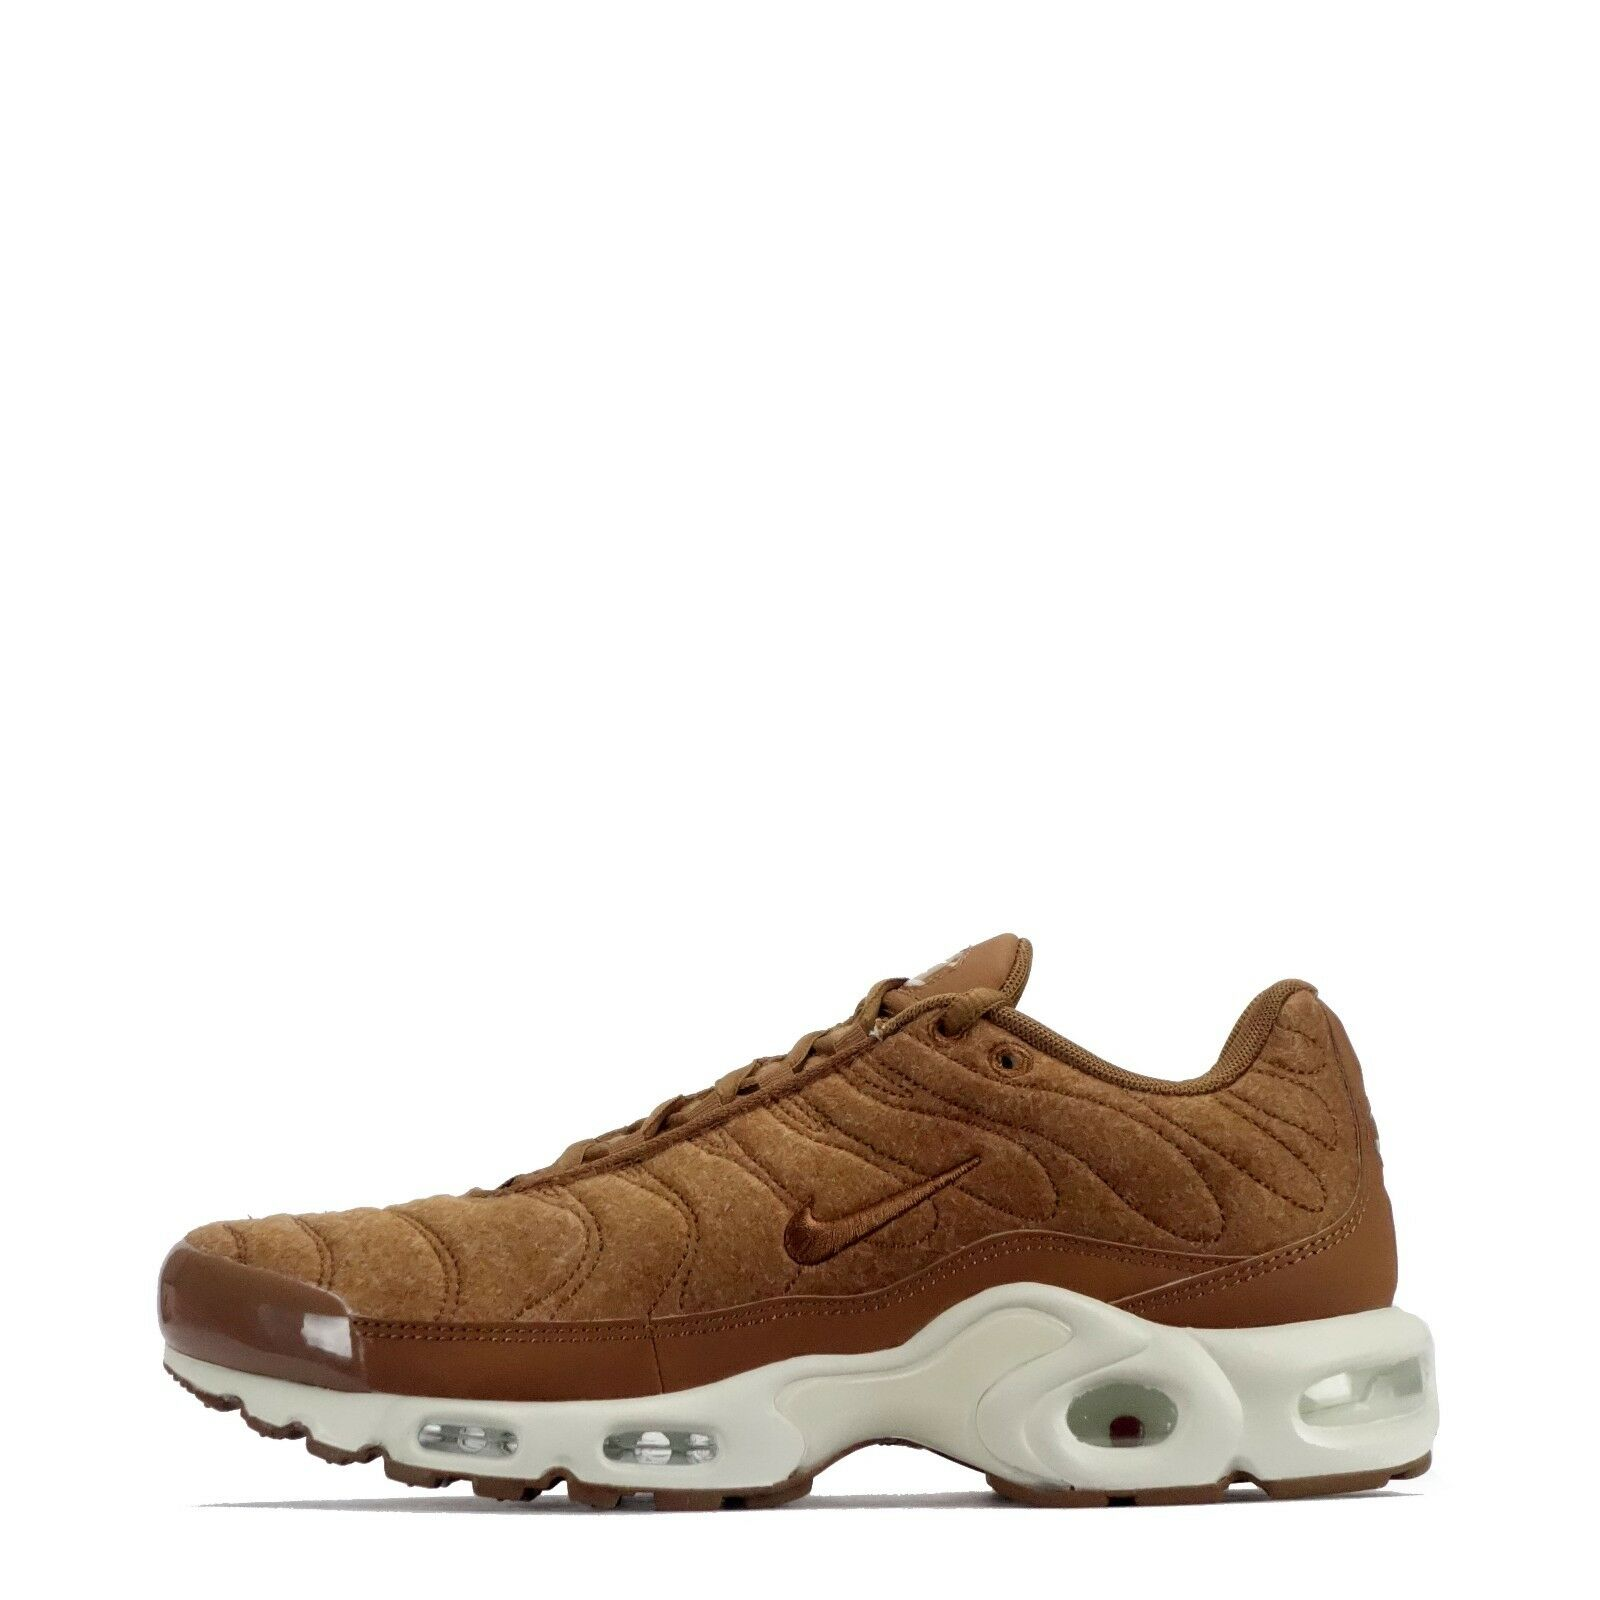 Nike Air Max Plus Quilted TN Tuned Men's Casual Style Trainers Shoes Ale Brown